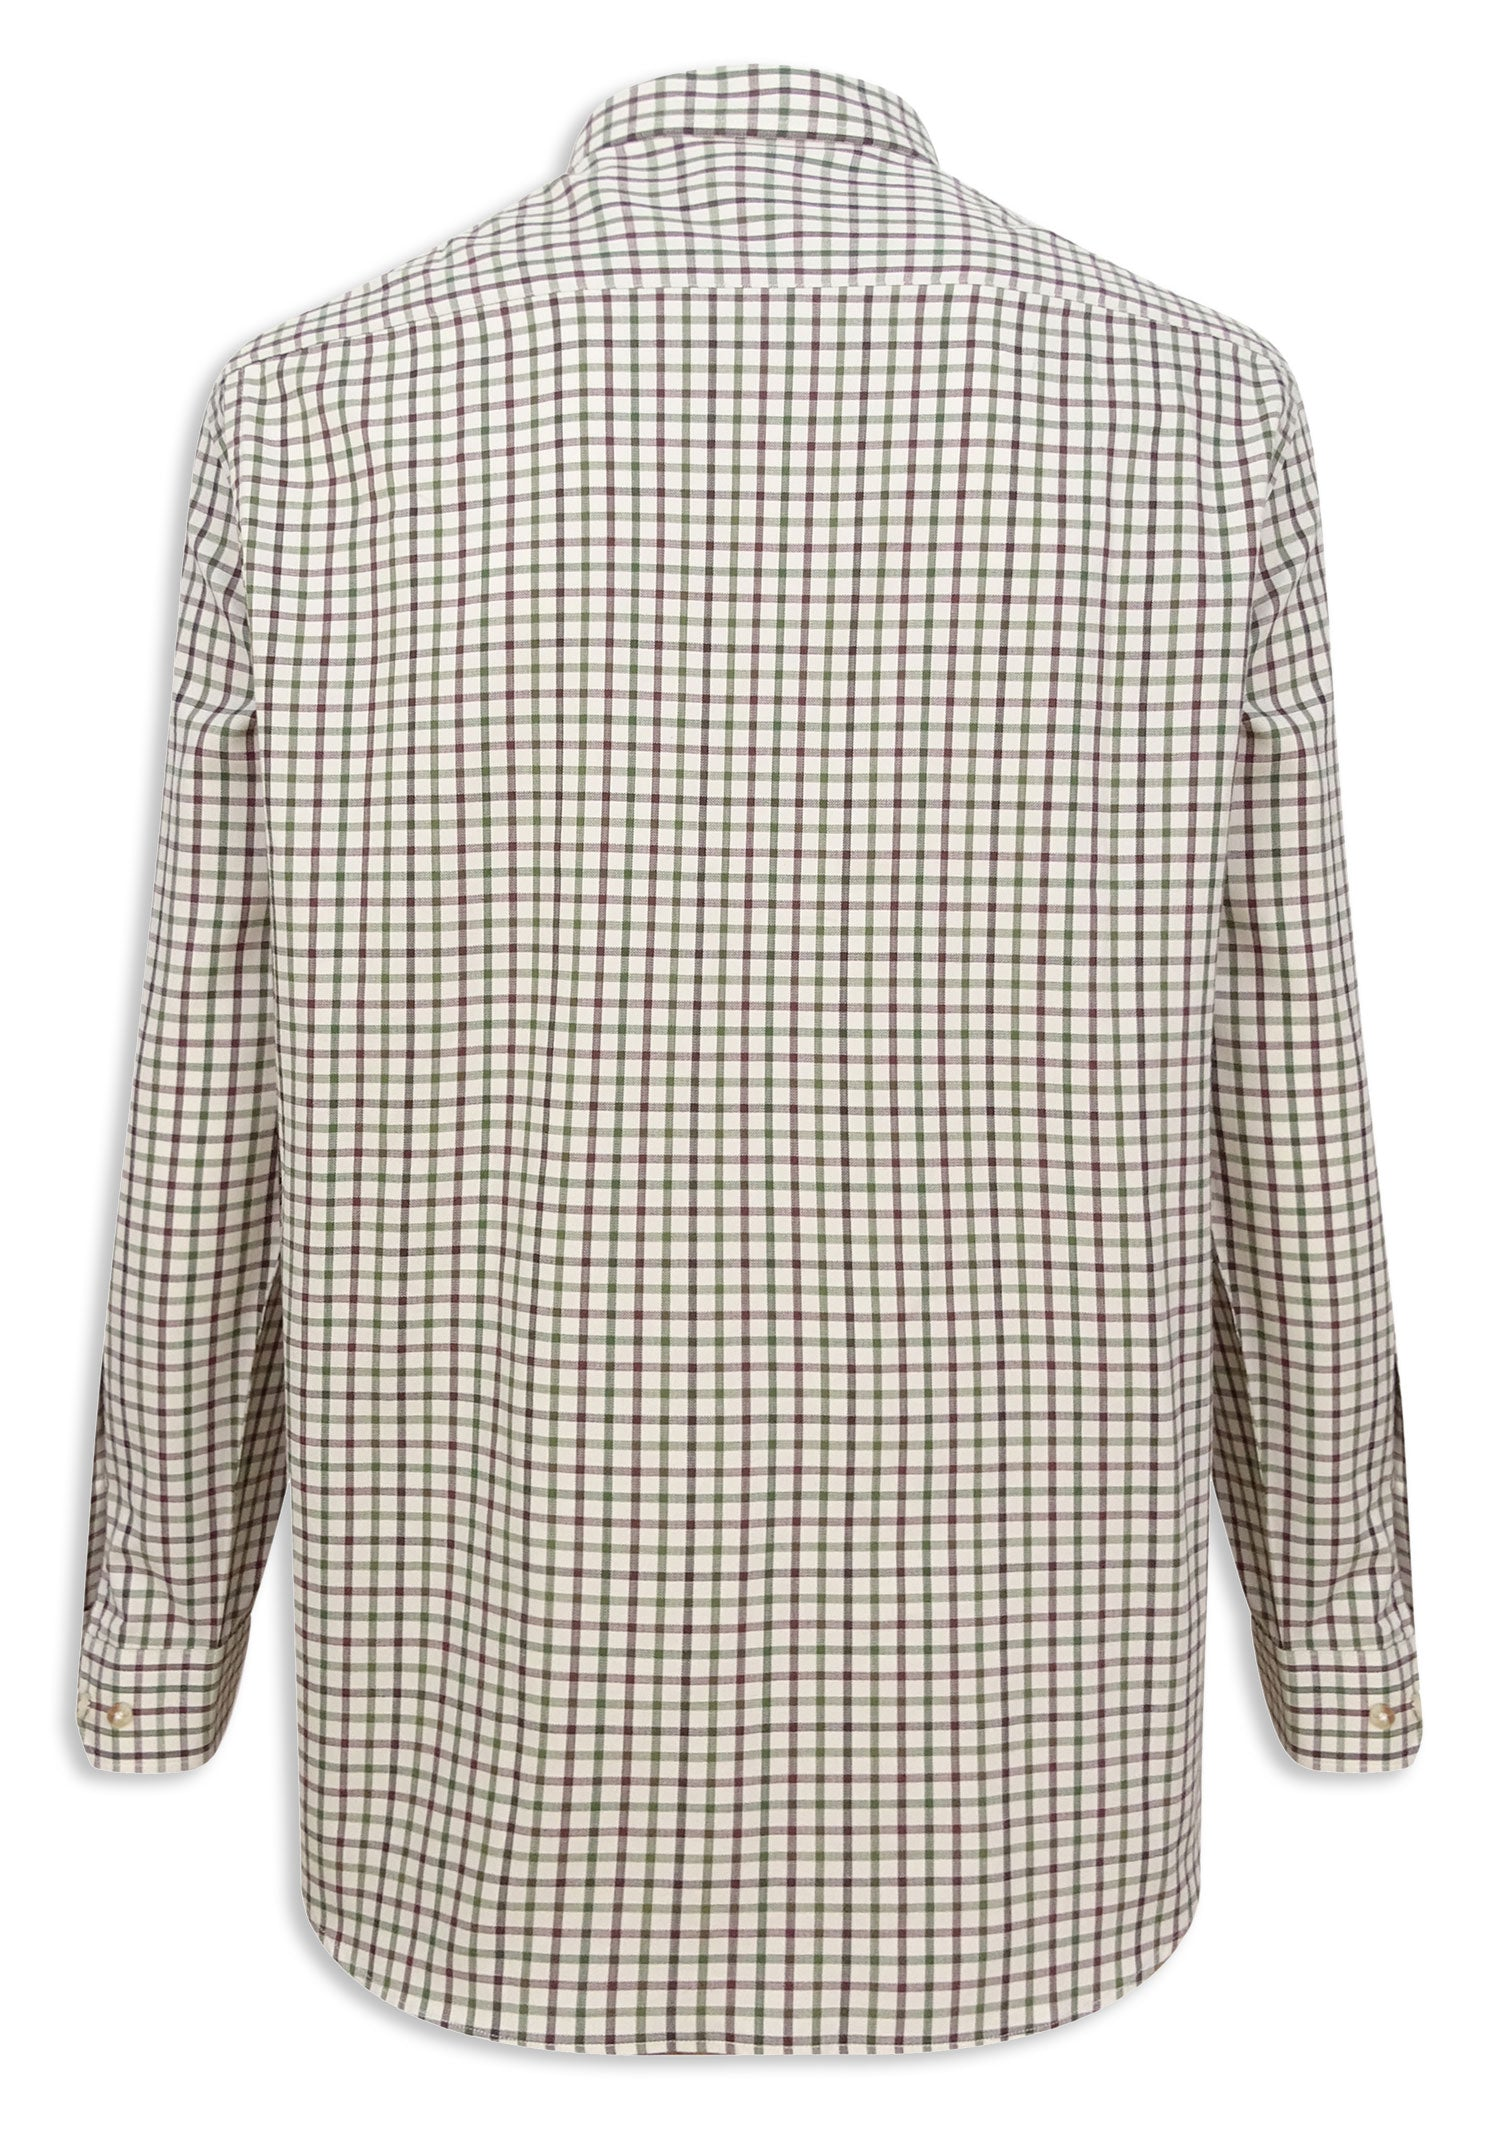 Country Tattersall shirt